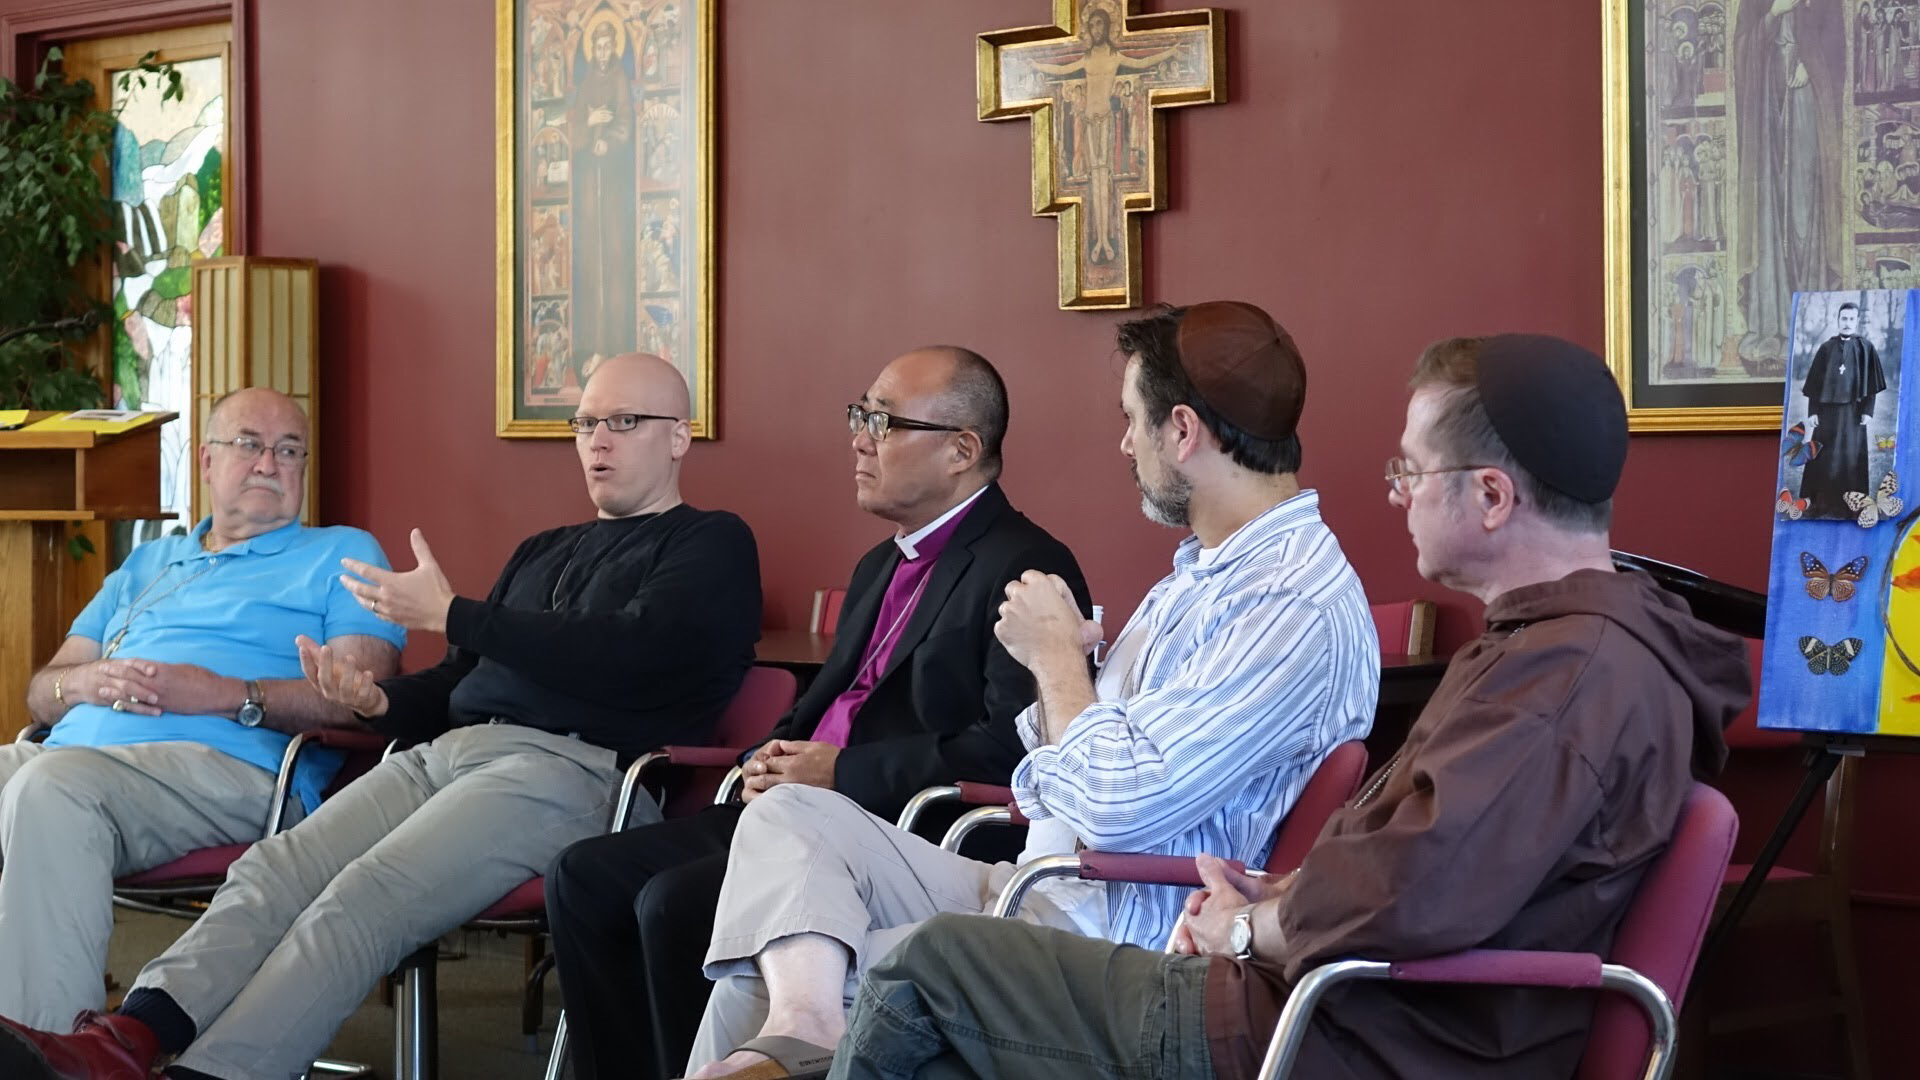 Brothers join Bishop Michel and Bishop Shin to discuss General Convention